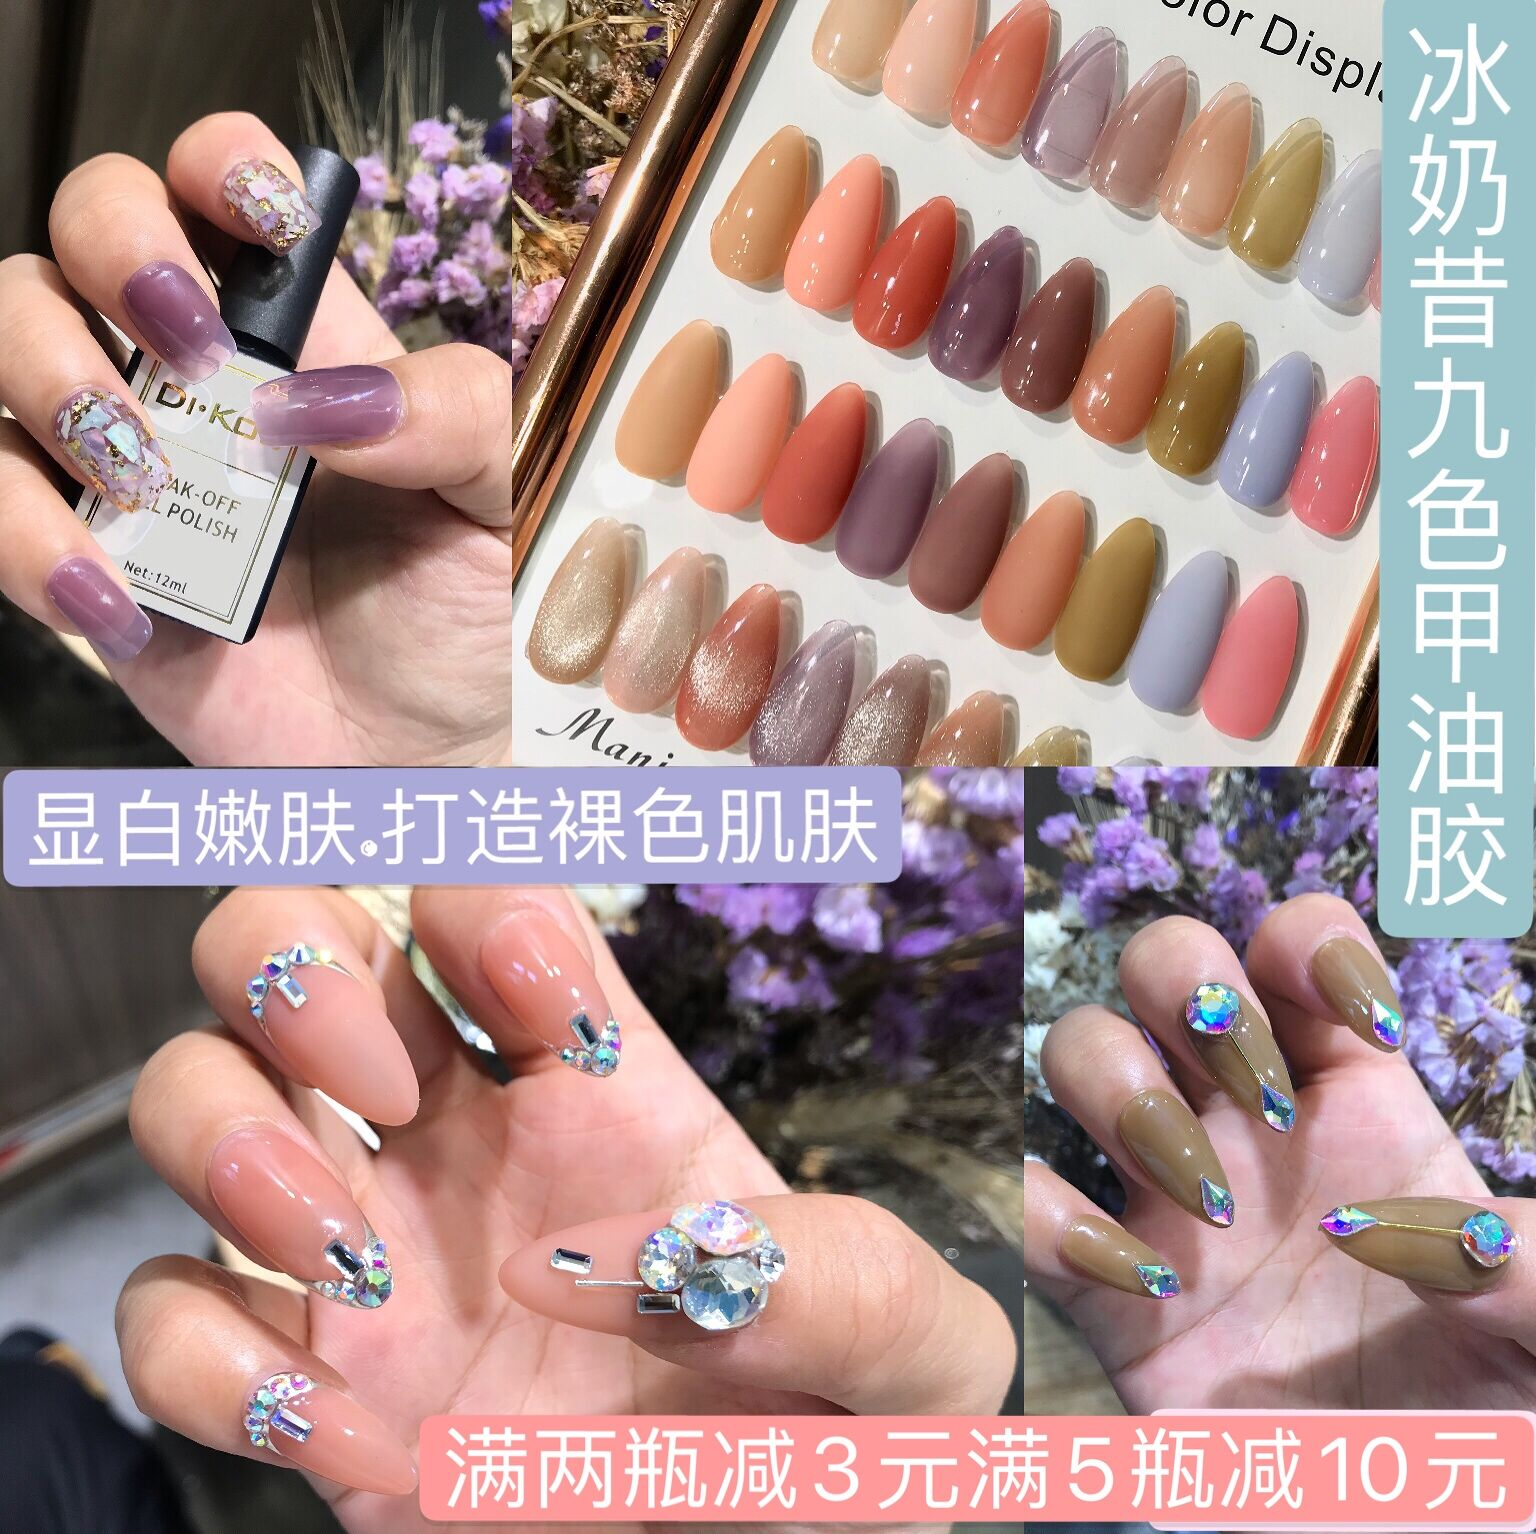 Manicure ice perma gel ice cream shake 9 Colors Nail Oil glue set ice transparent nude powder ice Brown naked ice powder net red